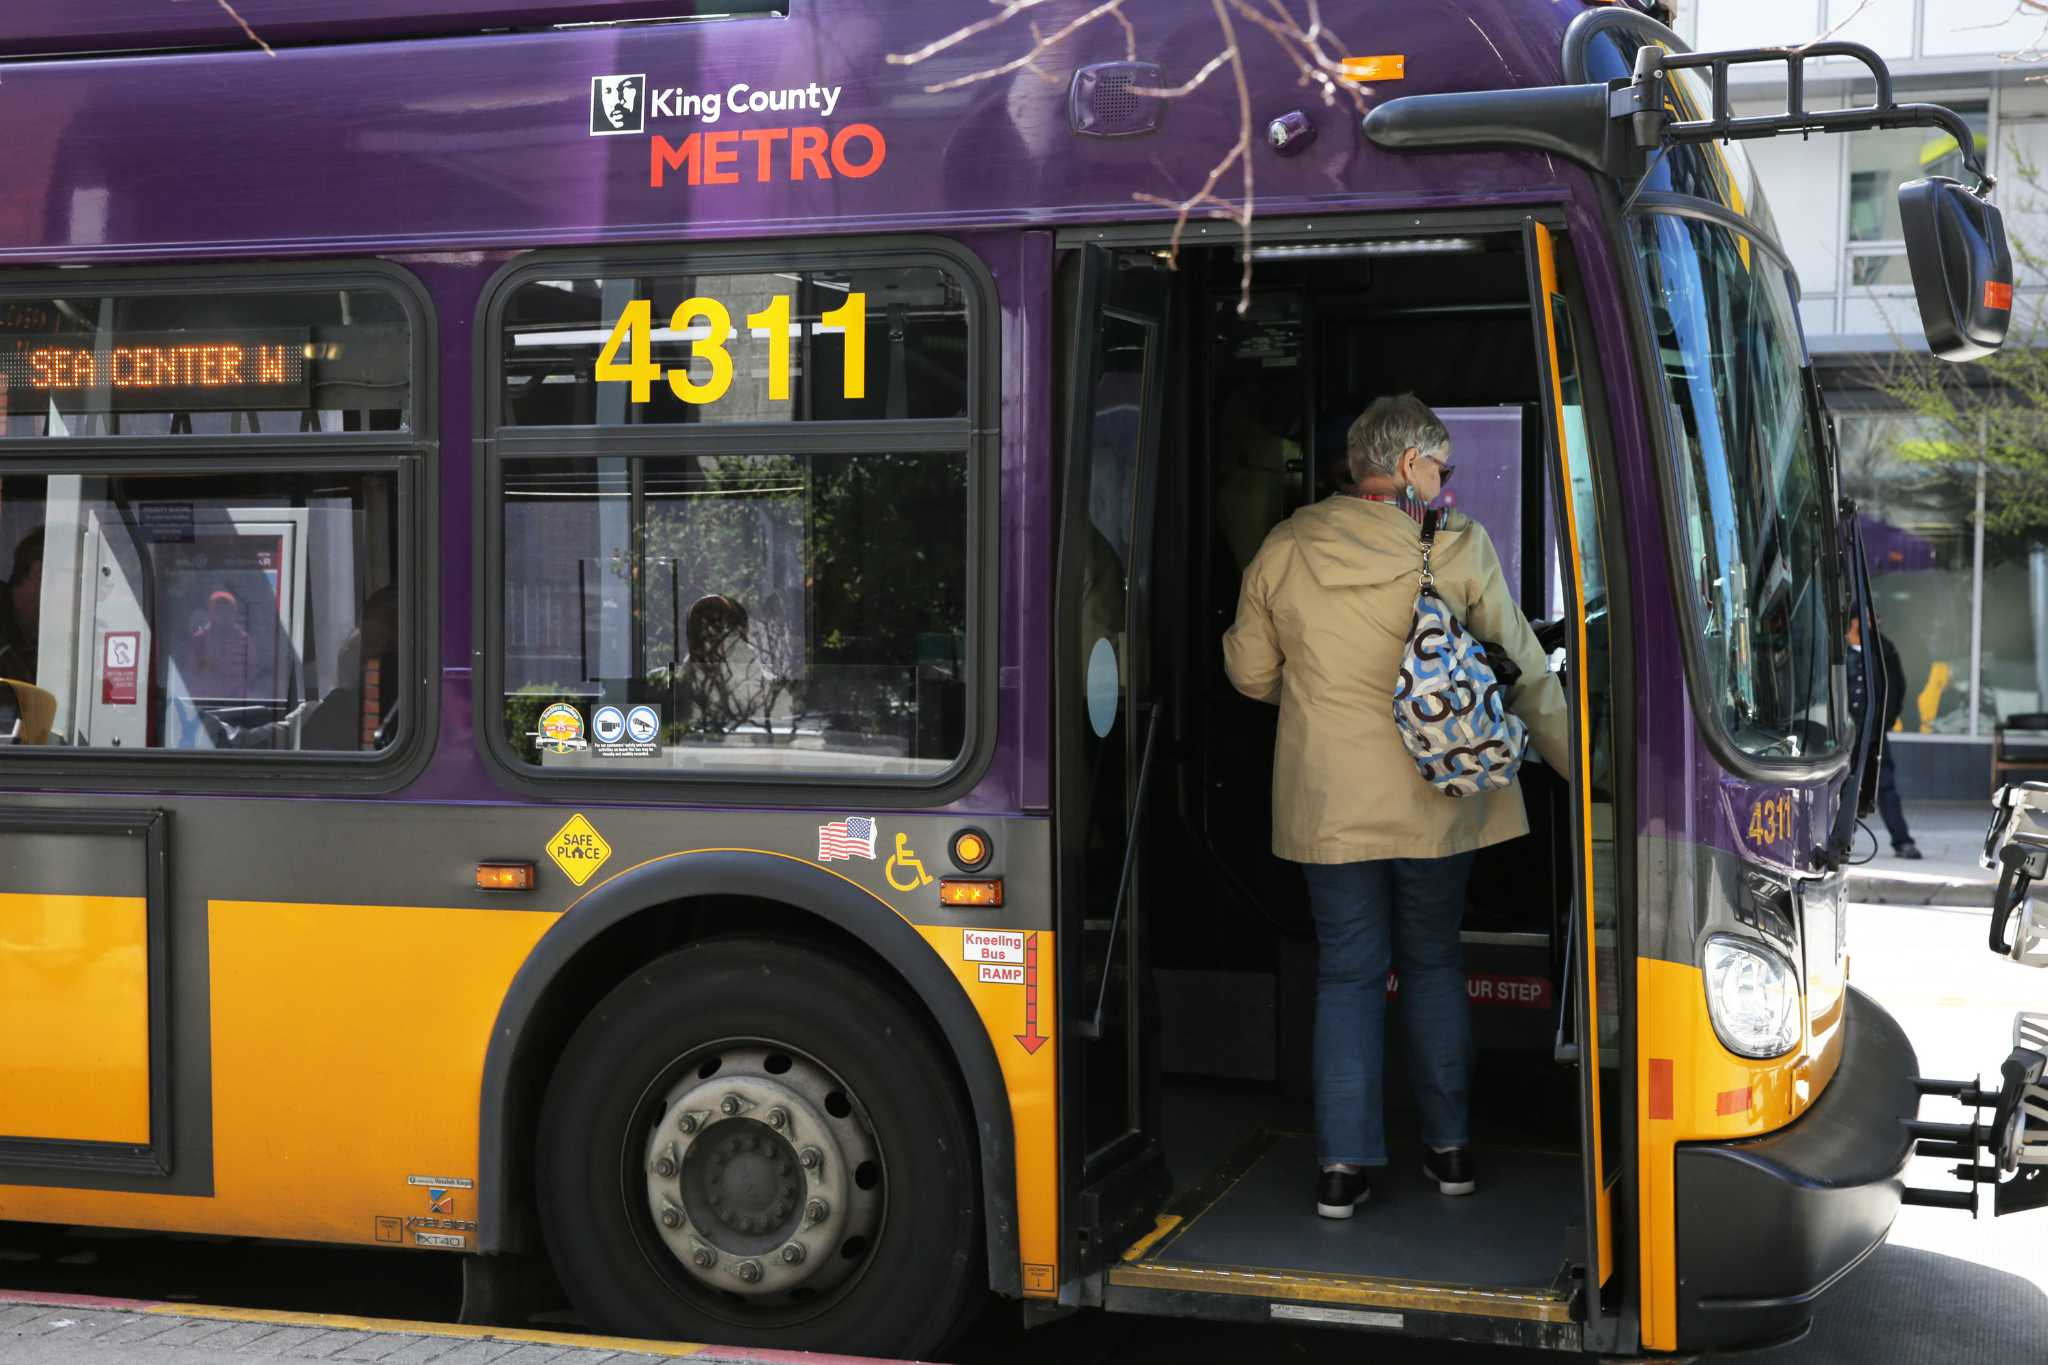 Many low-income residents rely on the bus. Now, thousands in King County could get passes for free